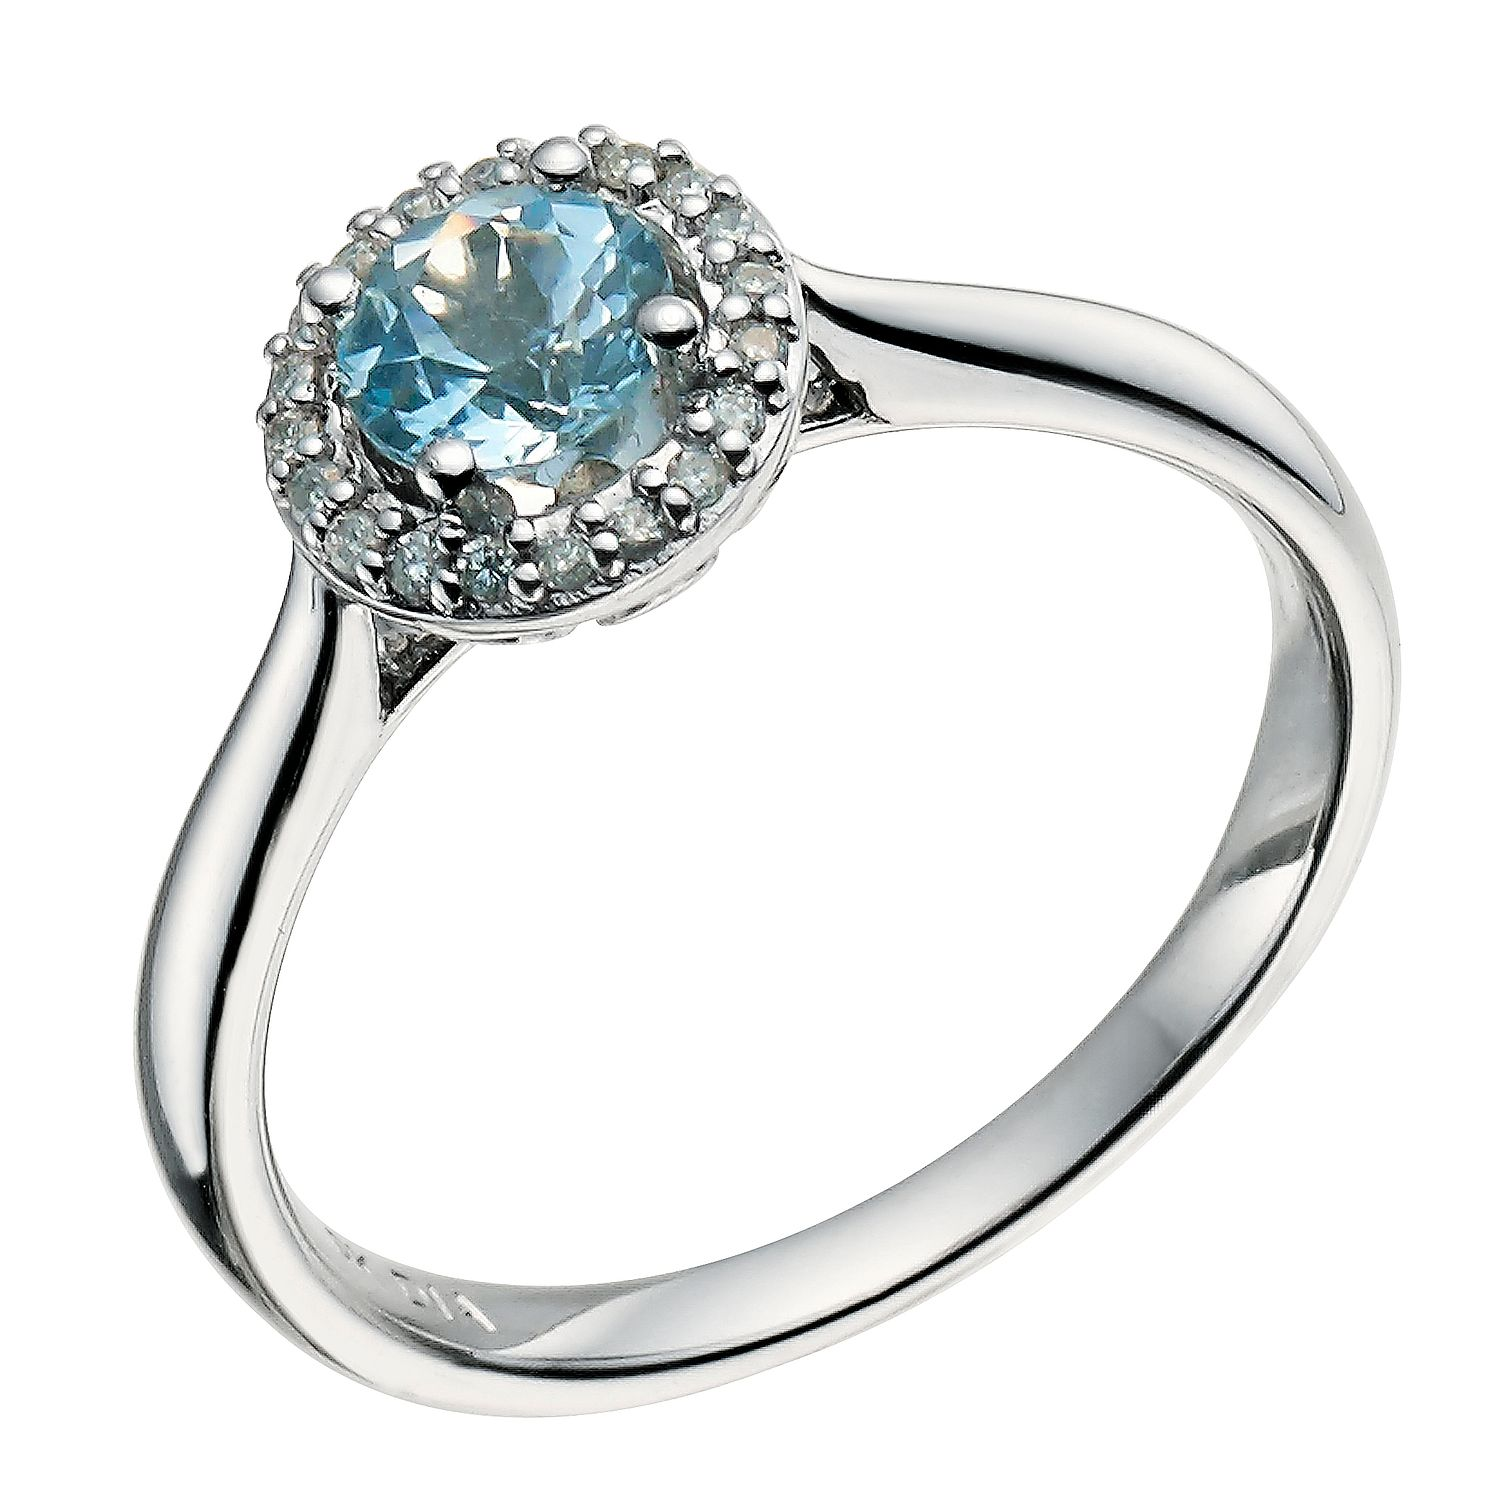 blue stone mccaul diamond wrapover with rings engagement goldsmiths galleries sapphire colourfade